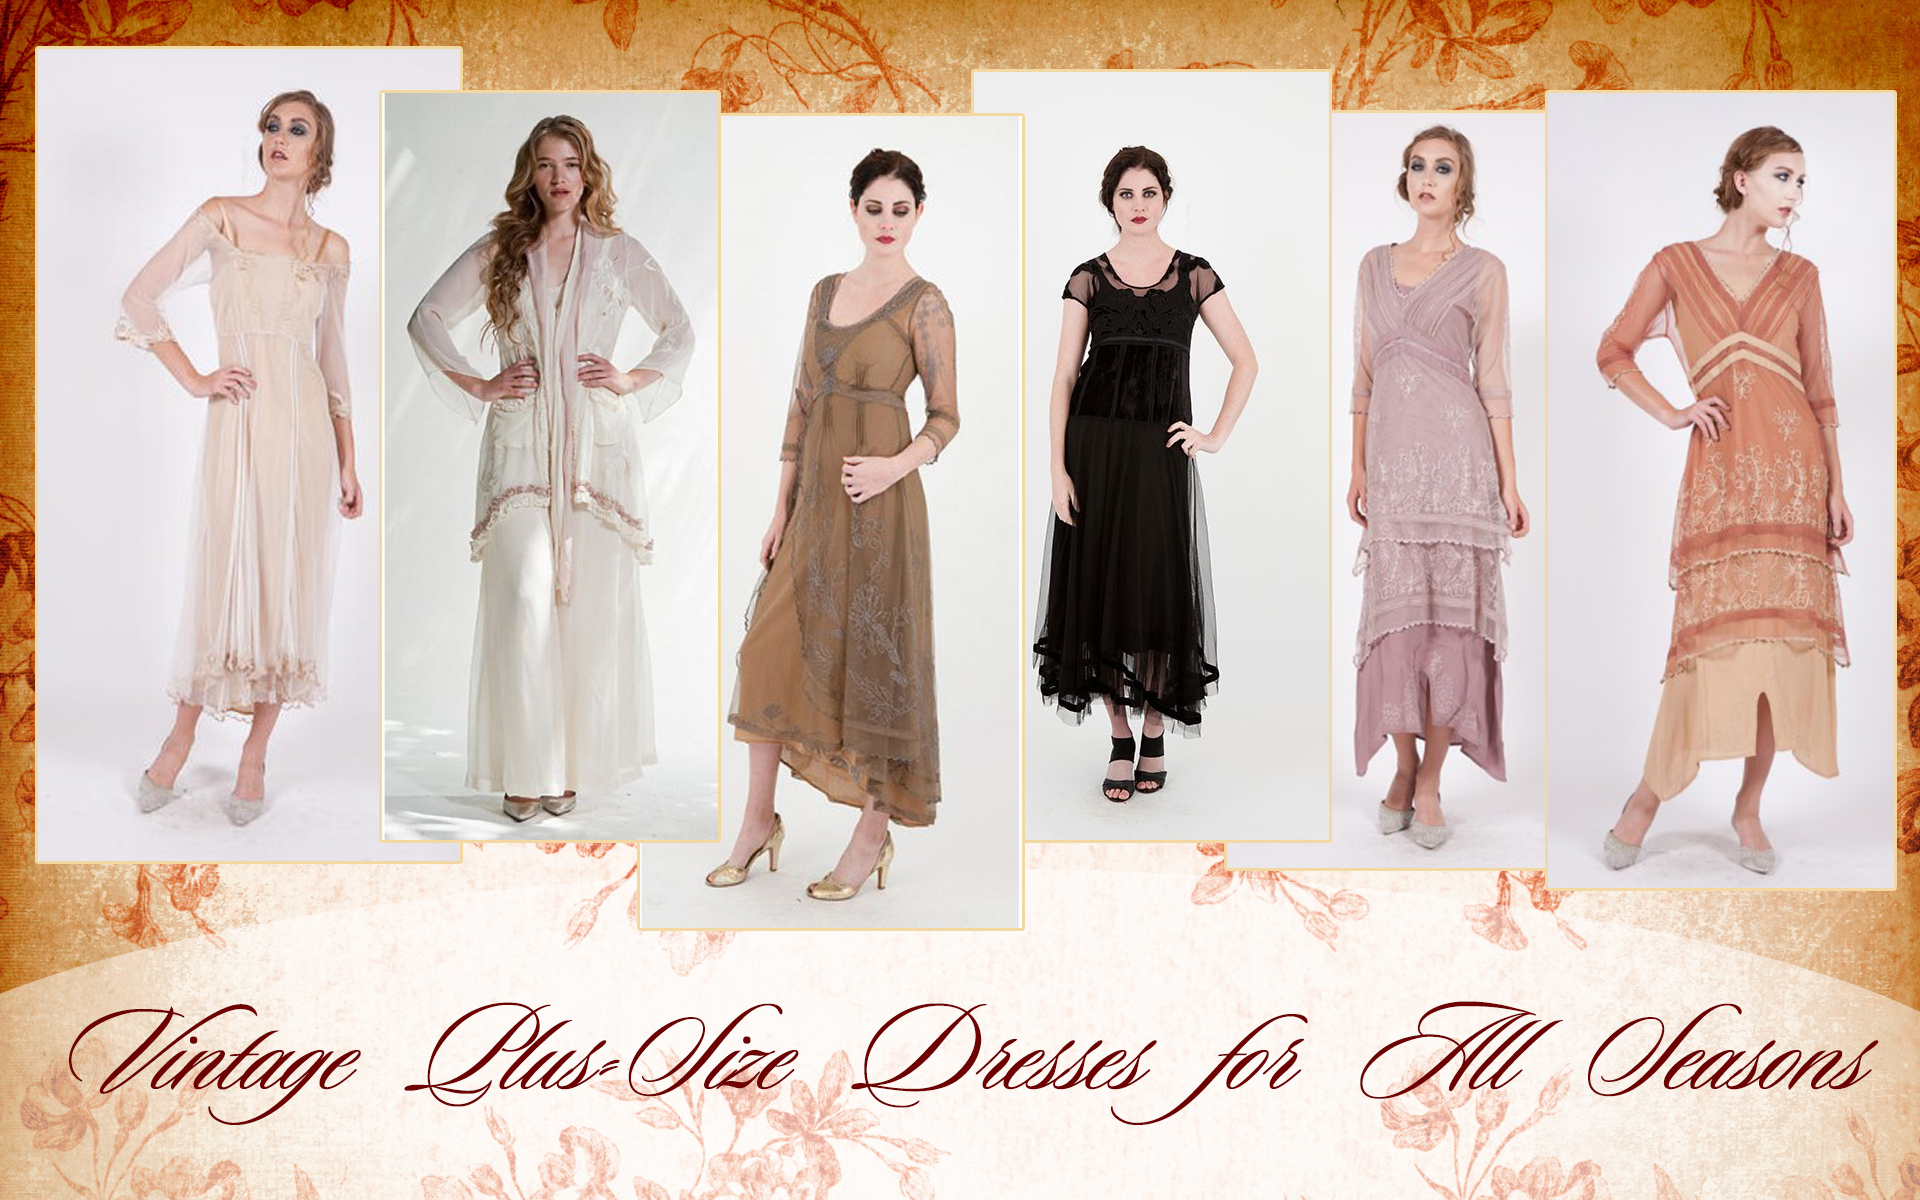 Vintage Style Dresses For Mothers Of The Bride | Nataya Dresses